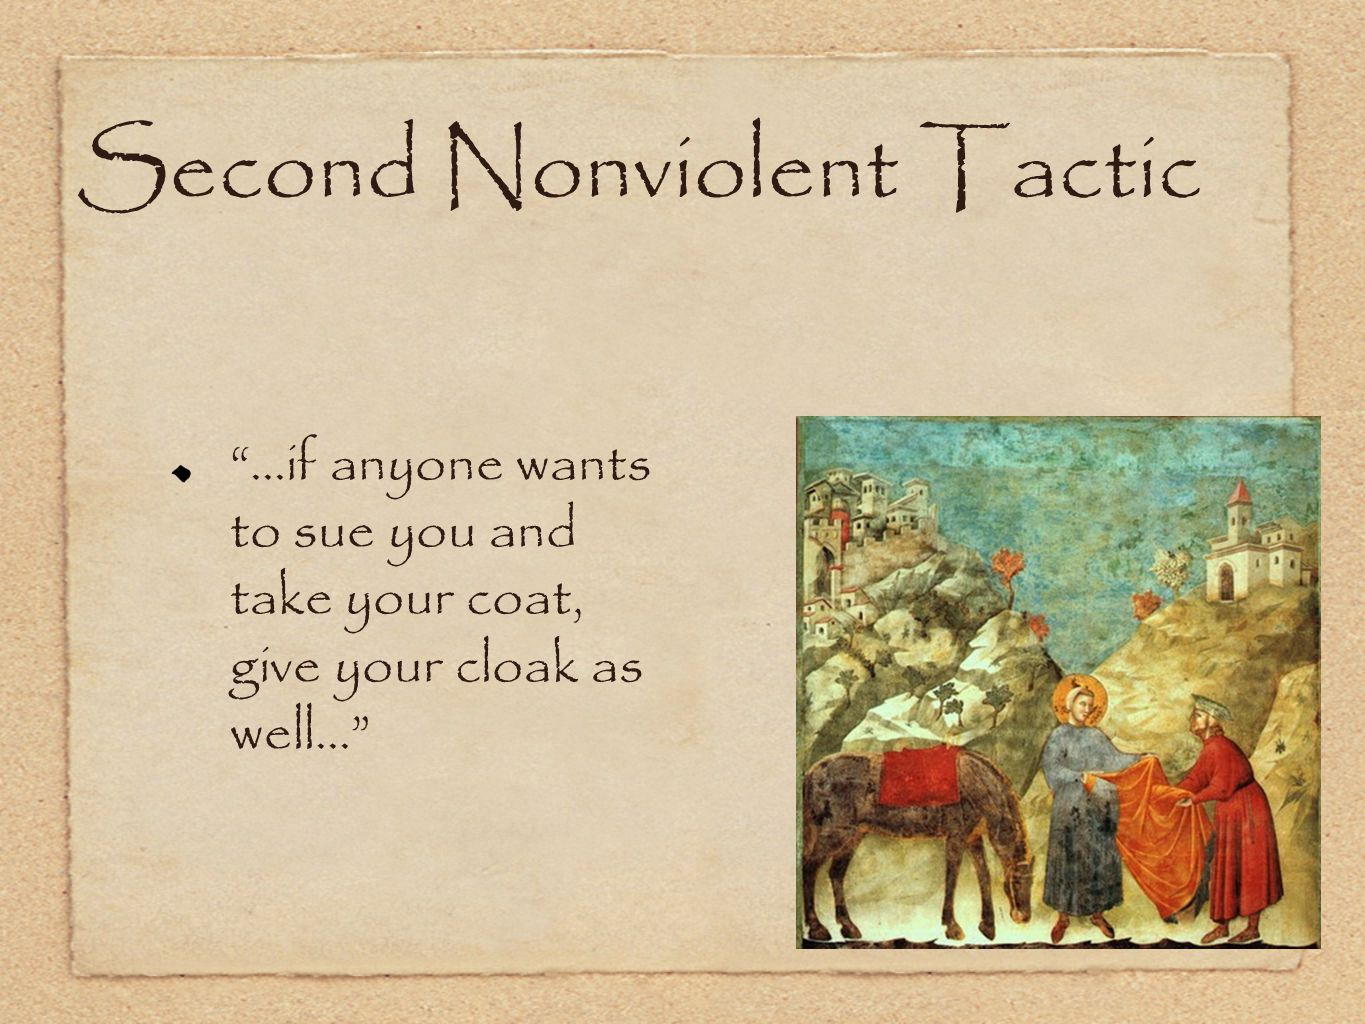 Second Nonviolent Tactic ...if anyone wants to sue you and take your coat, give your cloak as well...